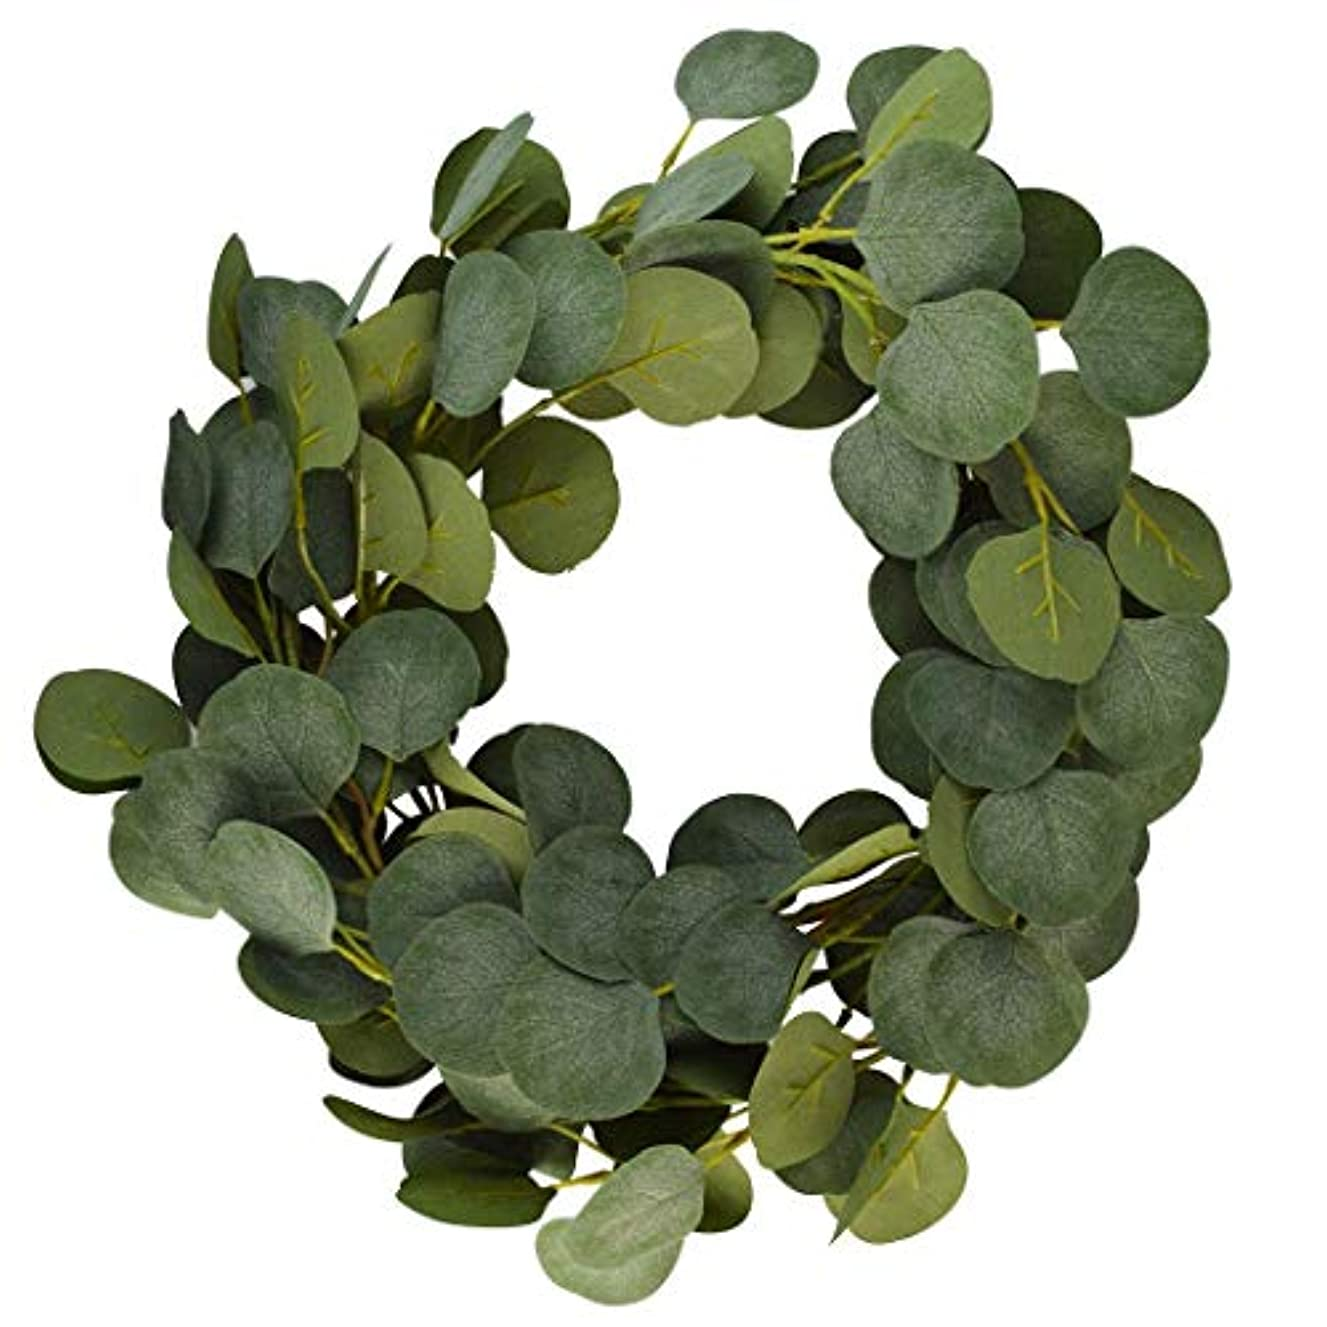 mifengda Artificial Vines Faux Silk Eucalyptus Garland Greenery Fake Hanging Plant for Home Garden Office Table Festival Party Wedding Backdrop Arch Wall Decor (6.56FT, 142 Leaves, Green)